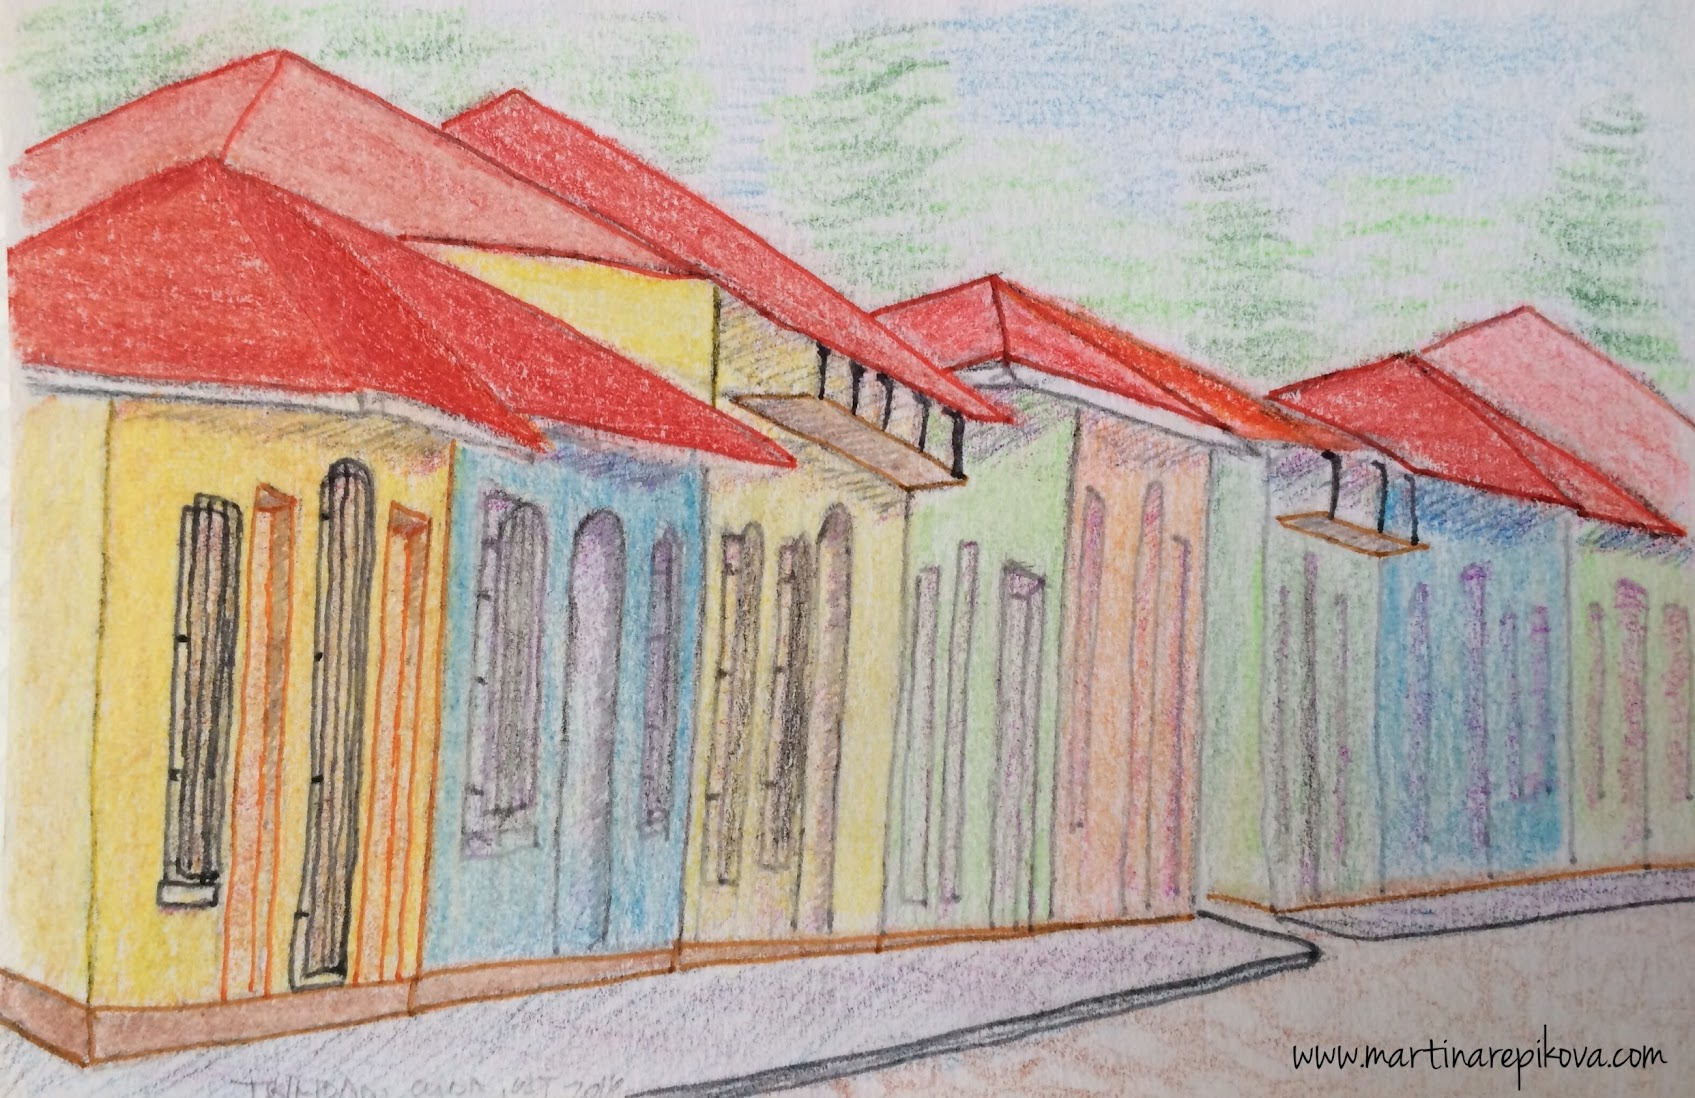 A street in Trinidad, Cuba (a coloured pencil sketch)